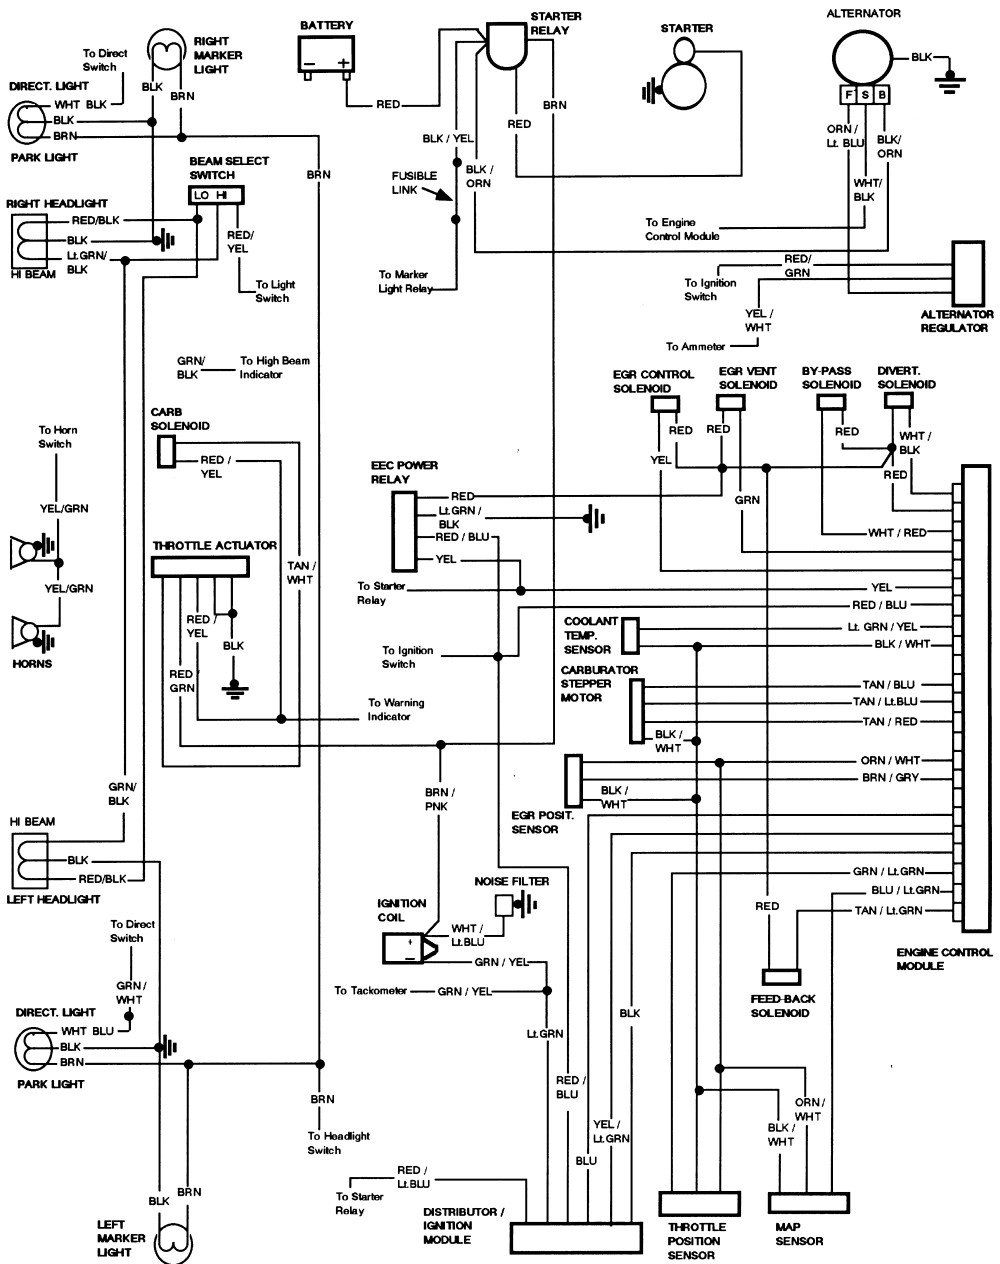 Ford F350 Wiring Diagram Free Wiring Diagram Collection For Ford